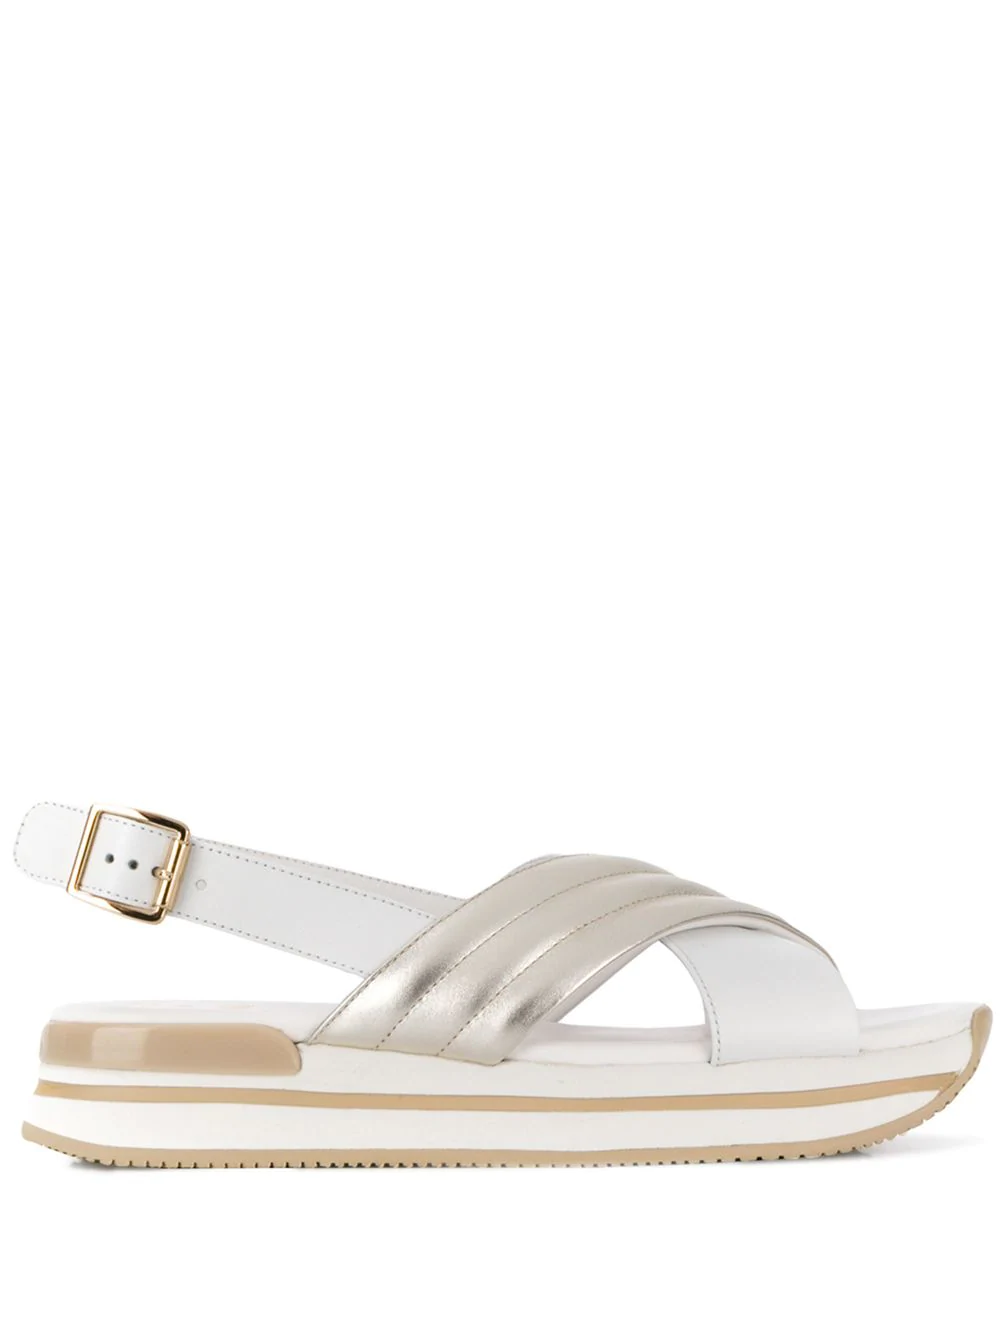 0c746340589 White and silver-tone leather and rubber H222 sandals from Hogan featuring  a ridged rubber sole